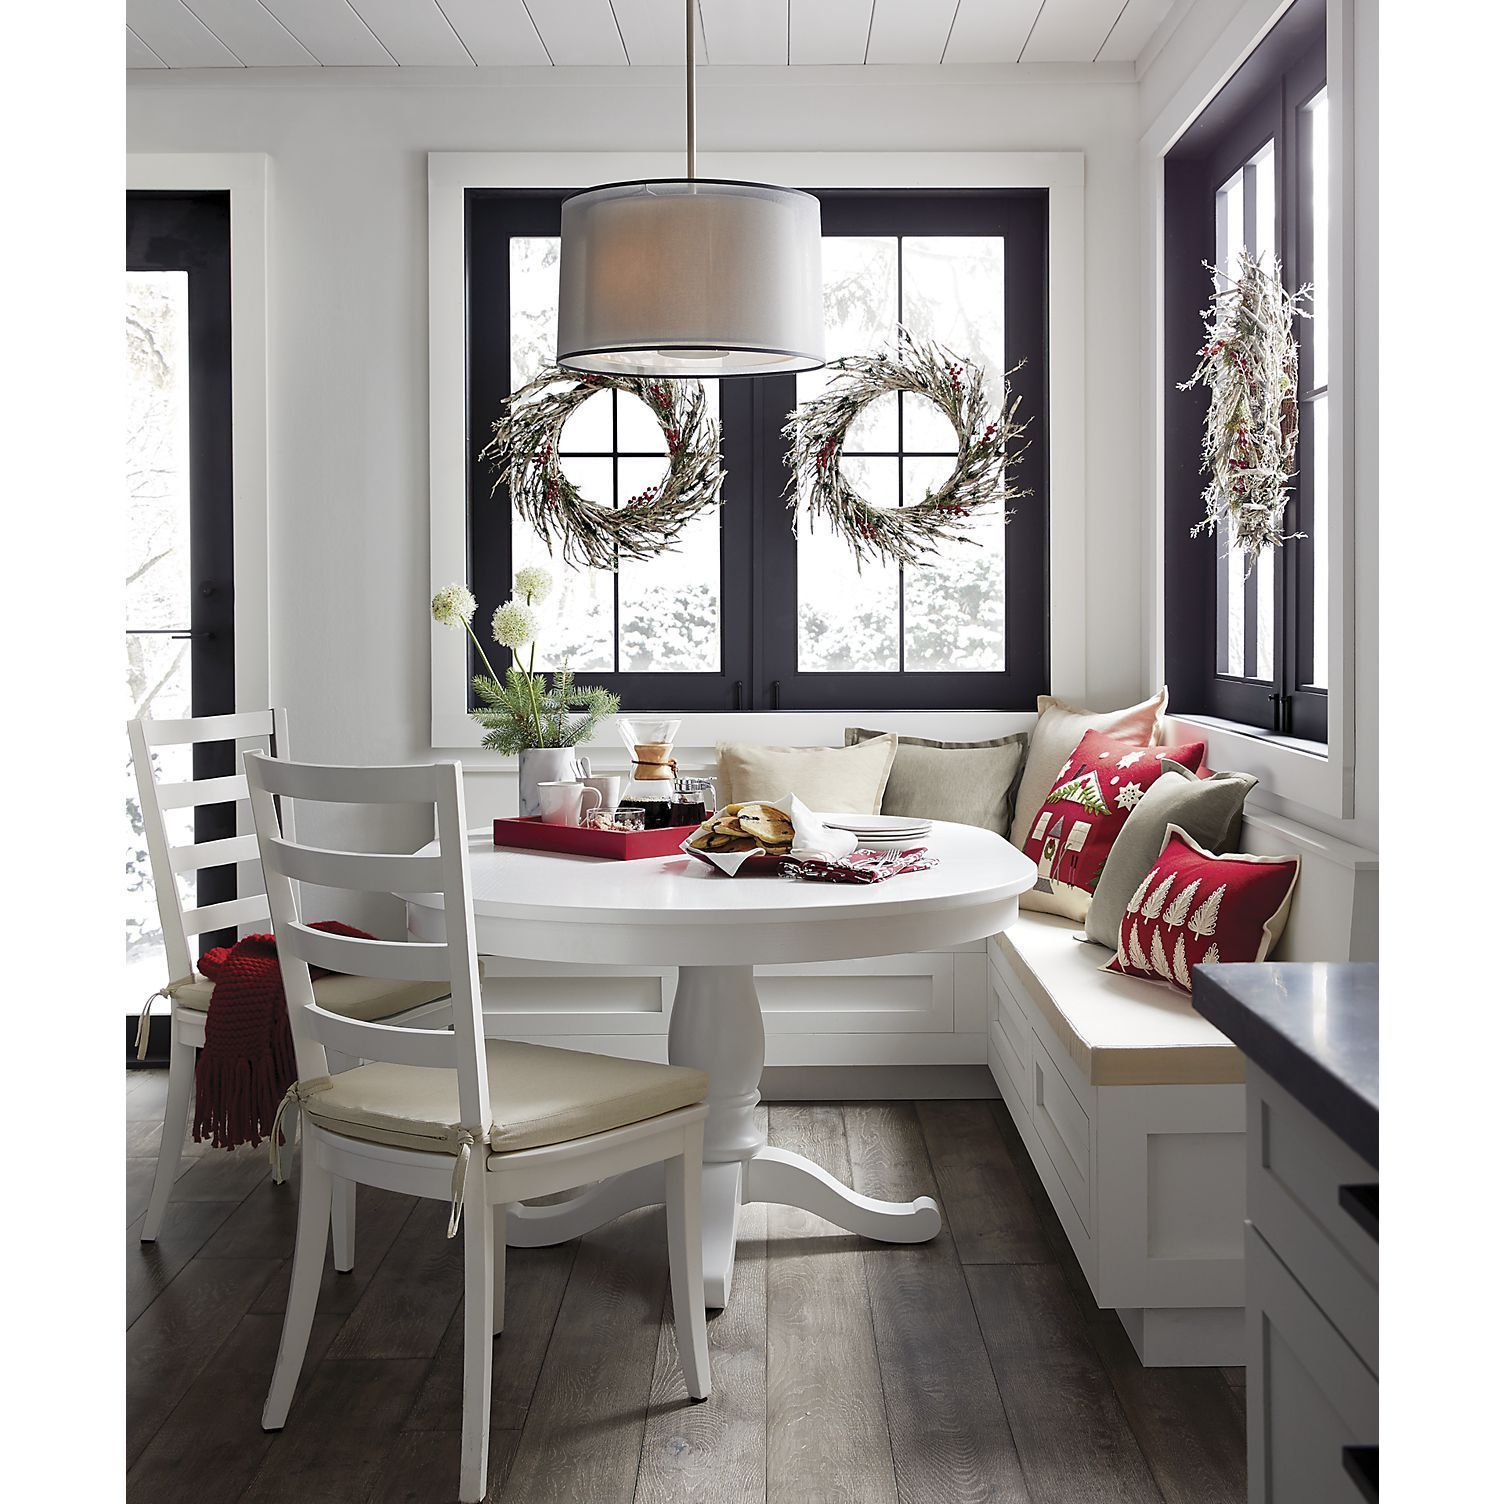 Avalon 45 White Extension Dining Table + Reviews | Crate and Barrel